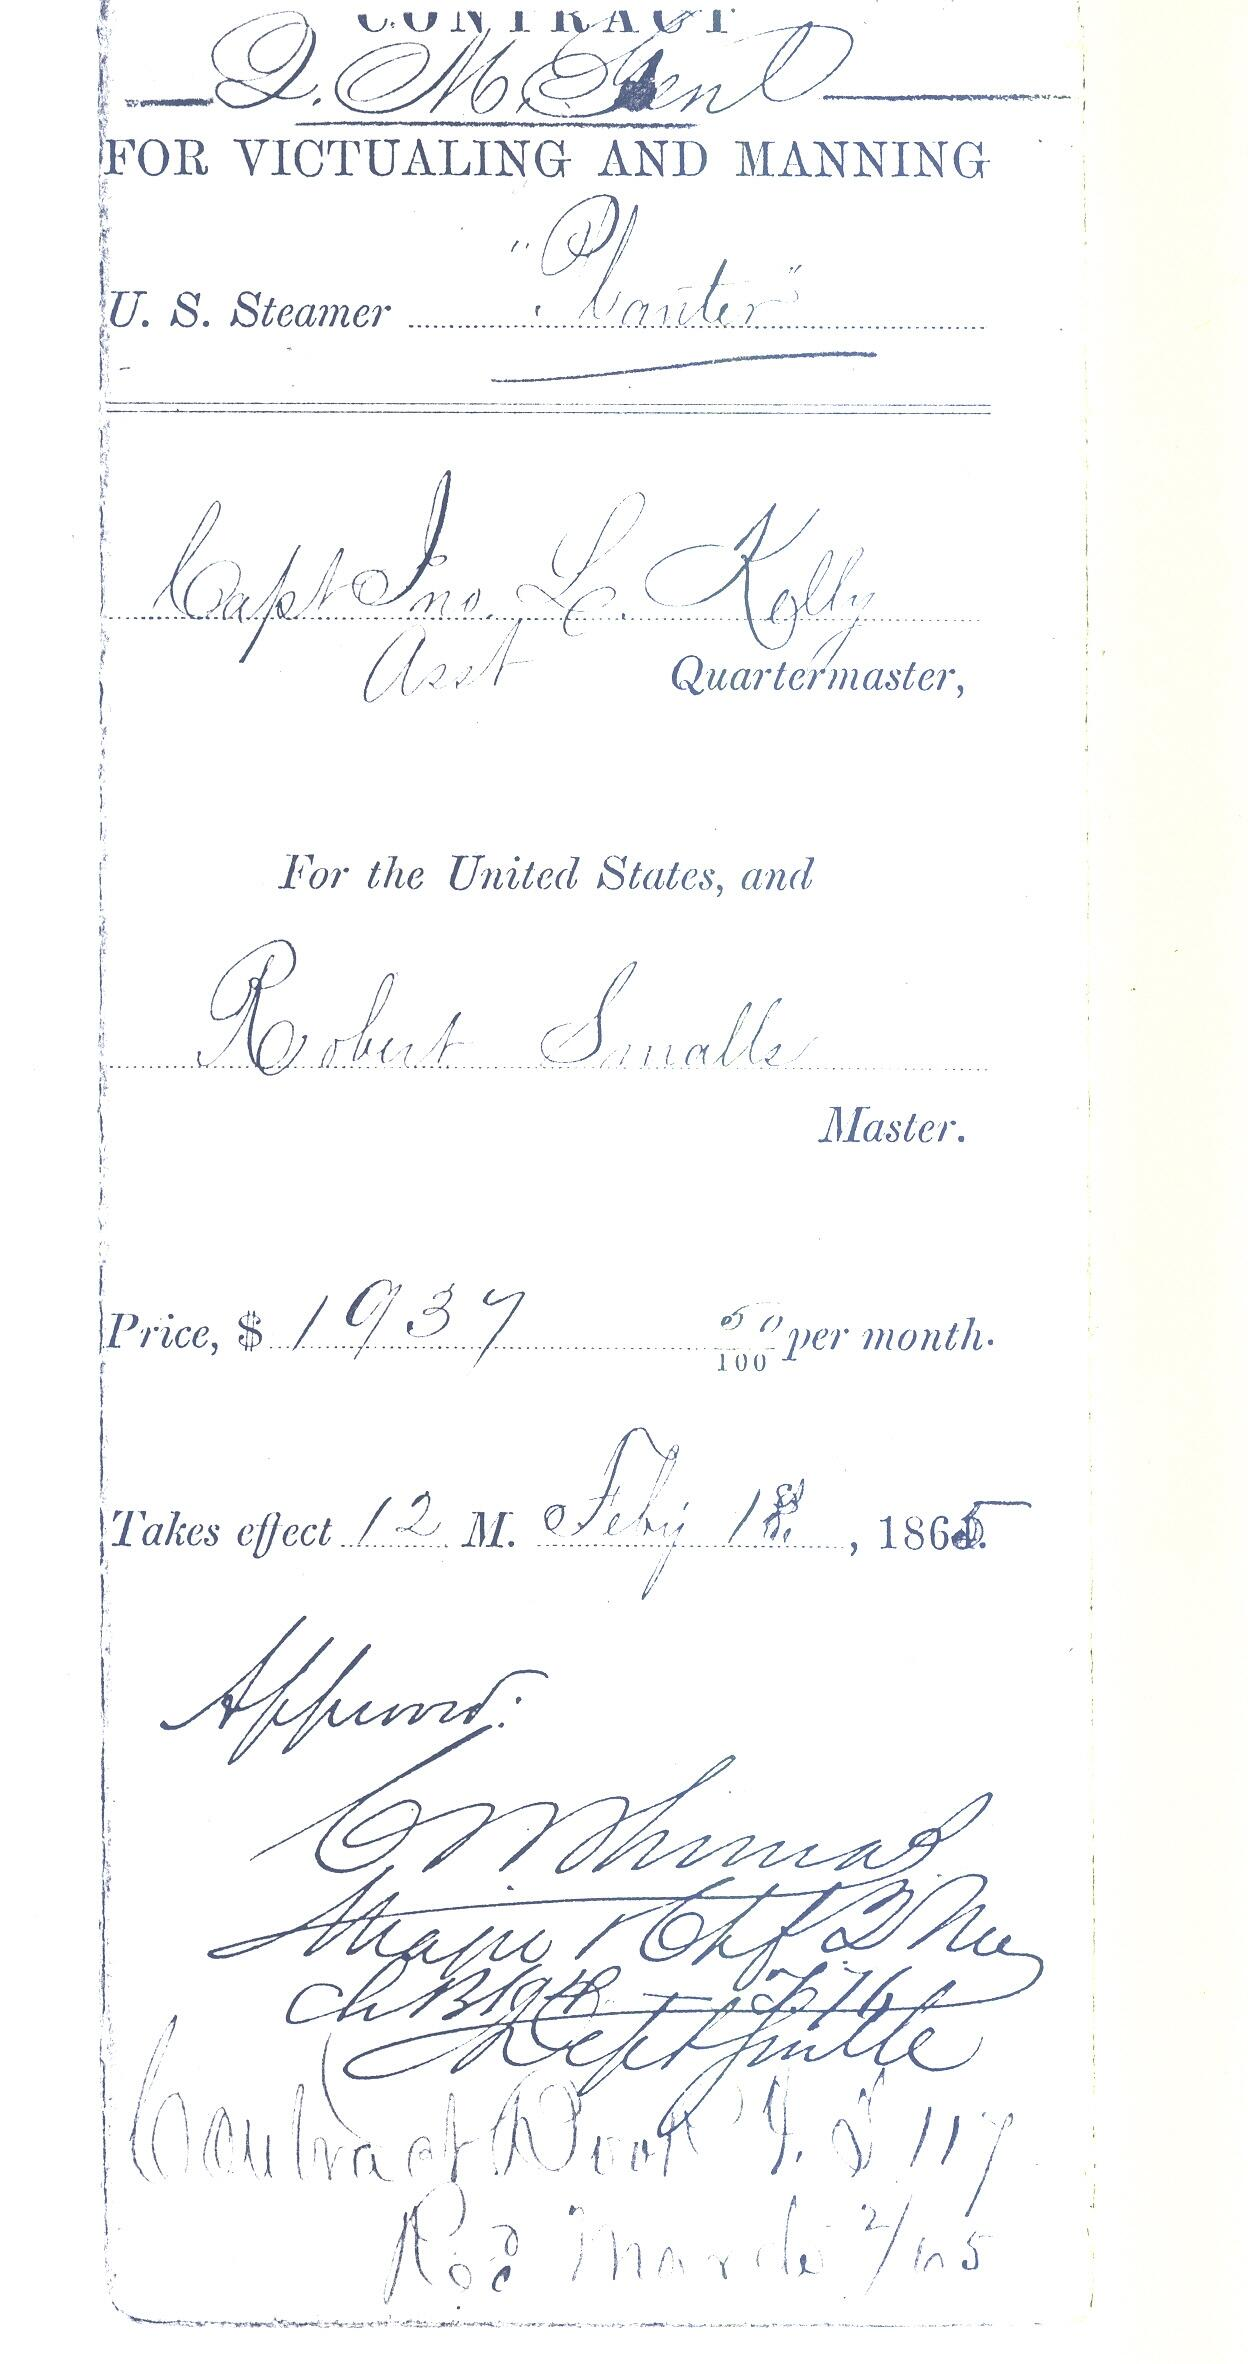 Robert Smalls' contract with the Union as Master of the Planter.